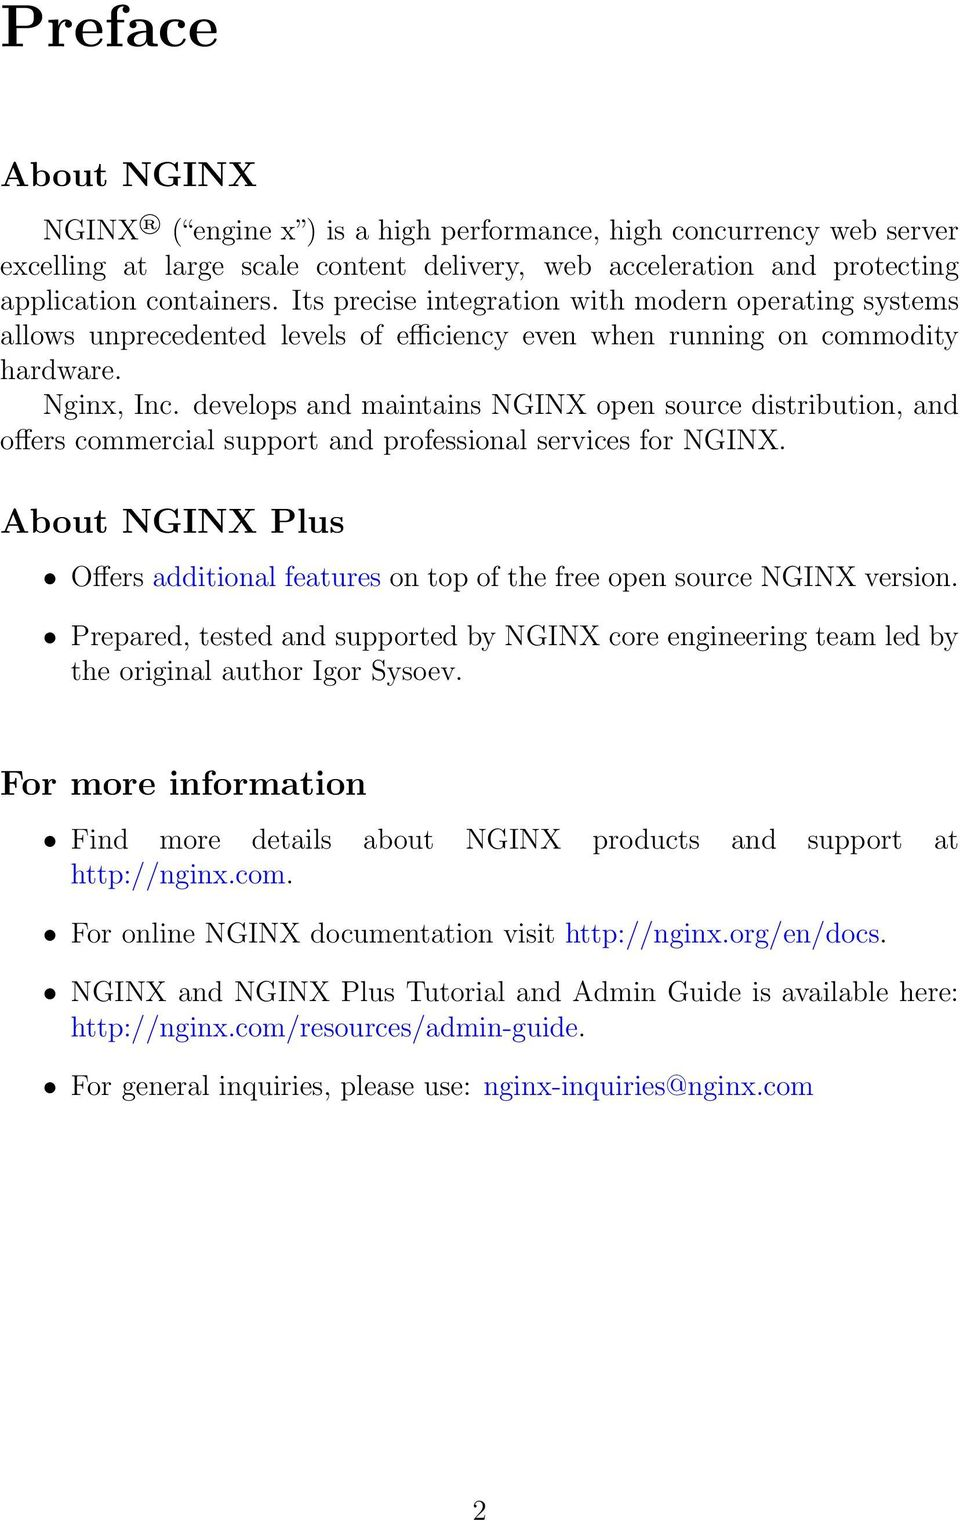 NGINX Plus Reference Guide - PDF